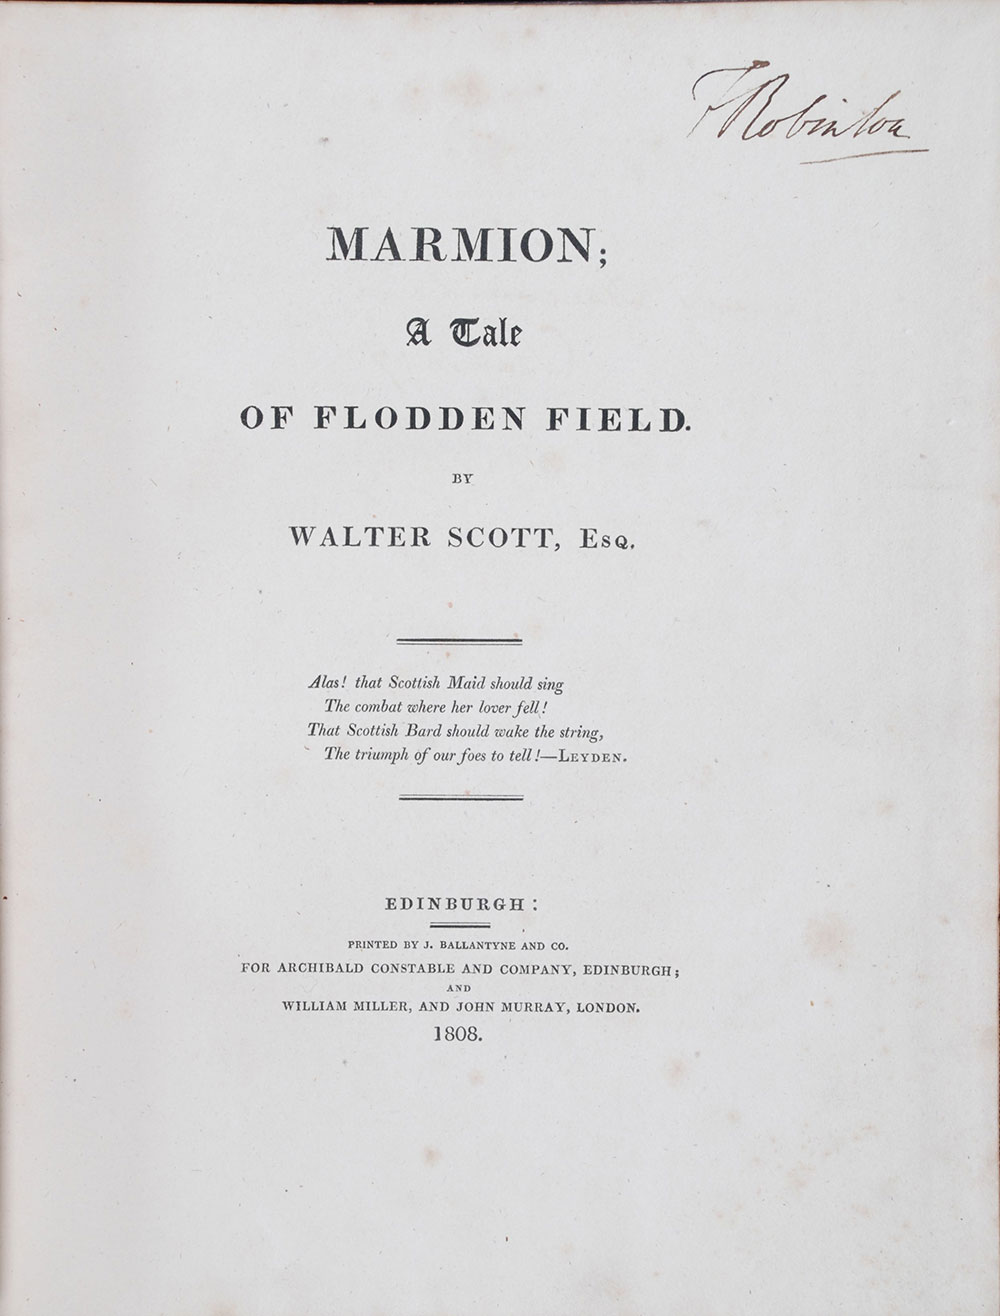 Sir Walter Scott. <em>Marmion: a tale of Flodden Field.</em> [1st edition]. Edinburgh: Printed by J. Ballantyne and Co. for Archibald Constable and Company, Edinburgh; and William Miller, and John Murray, London, 1808.